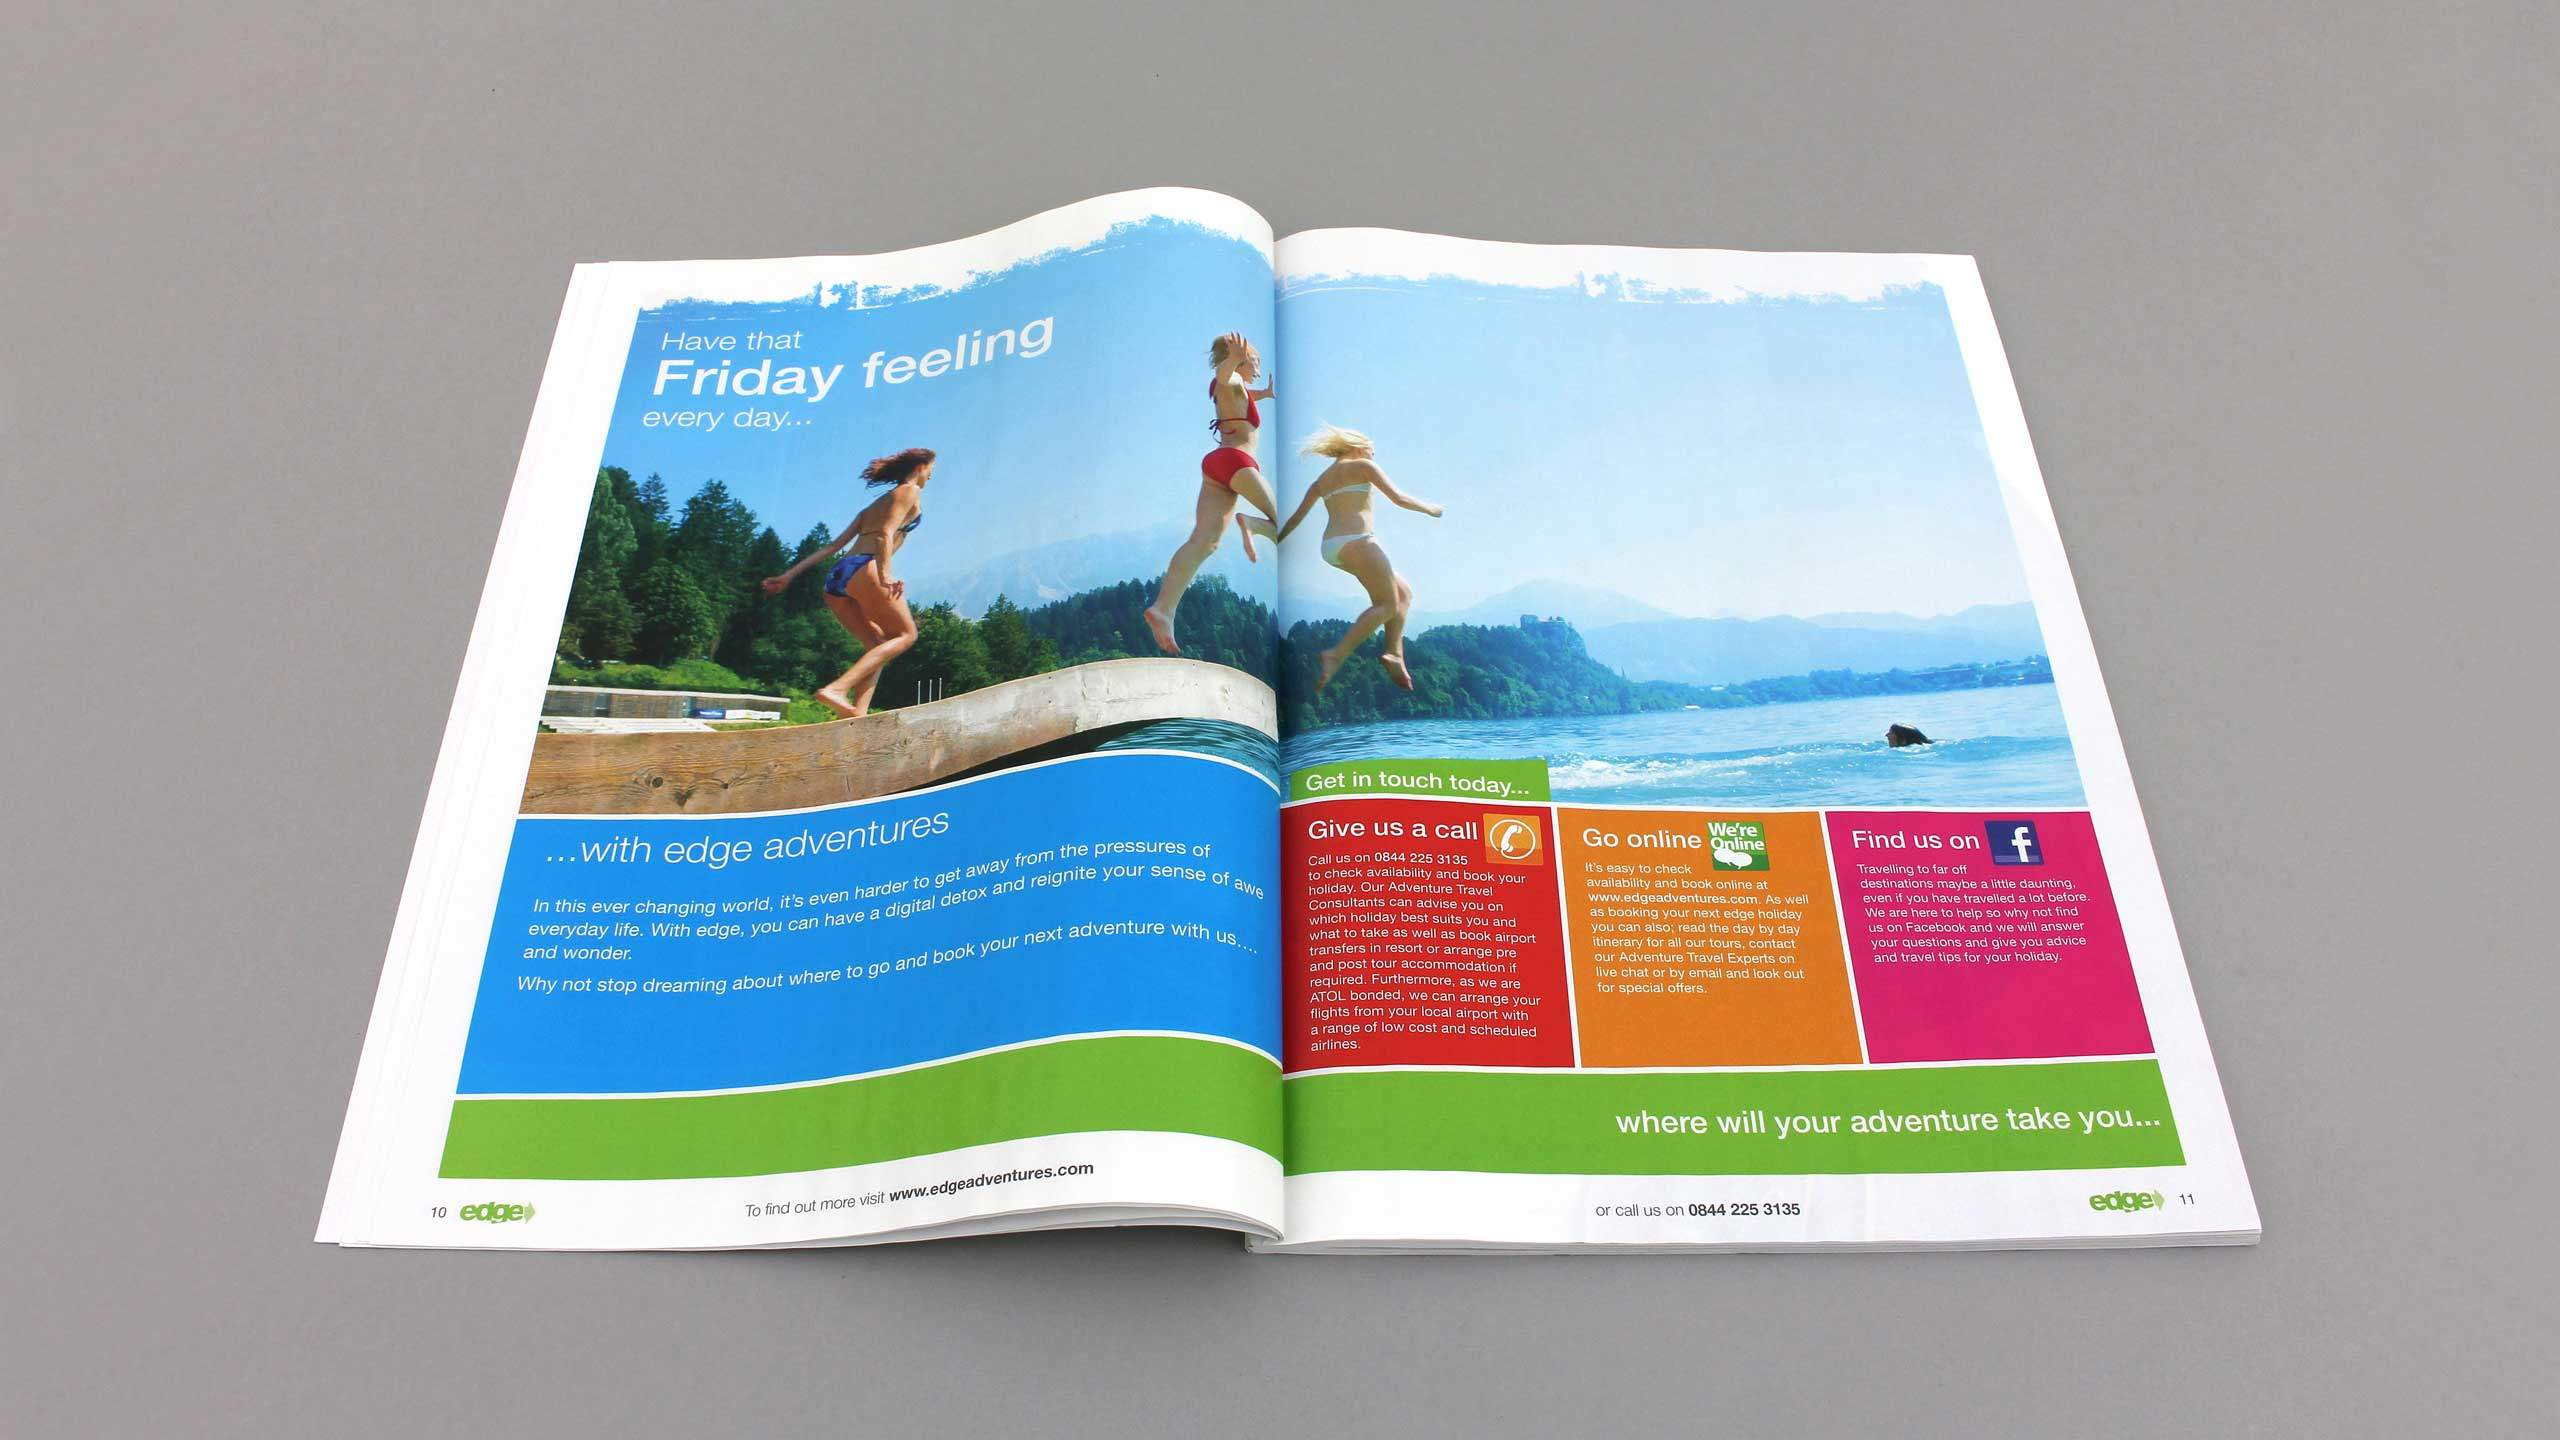 18-30 travel brochure design that friday feeling pages edge adventure